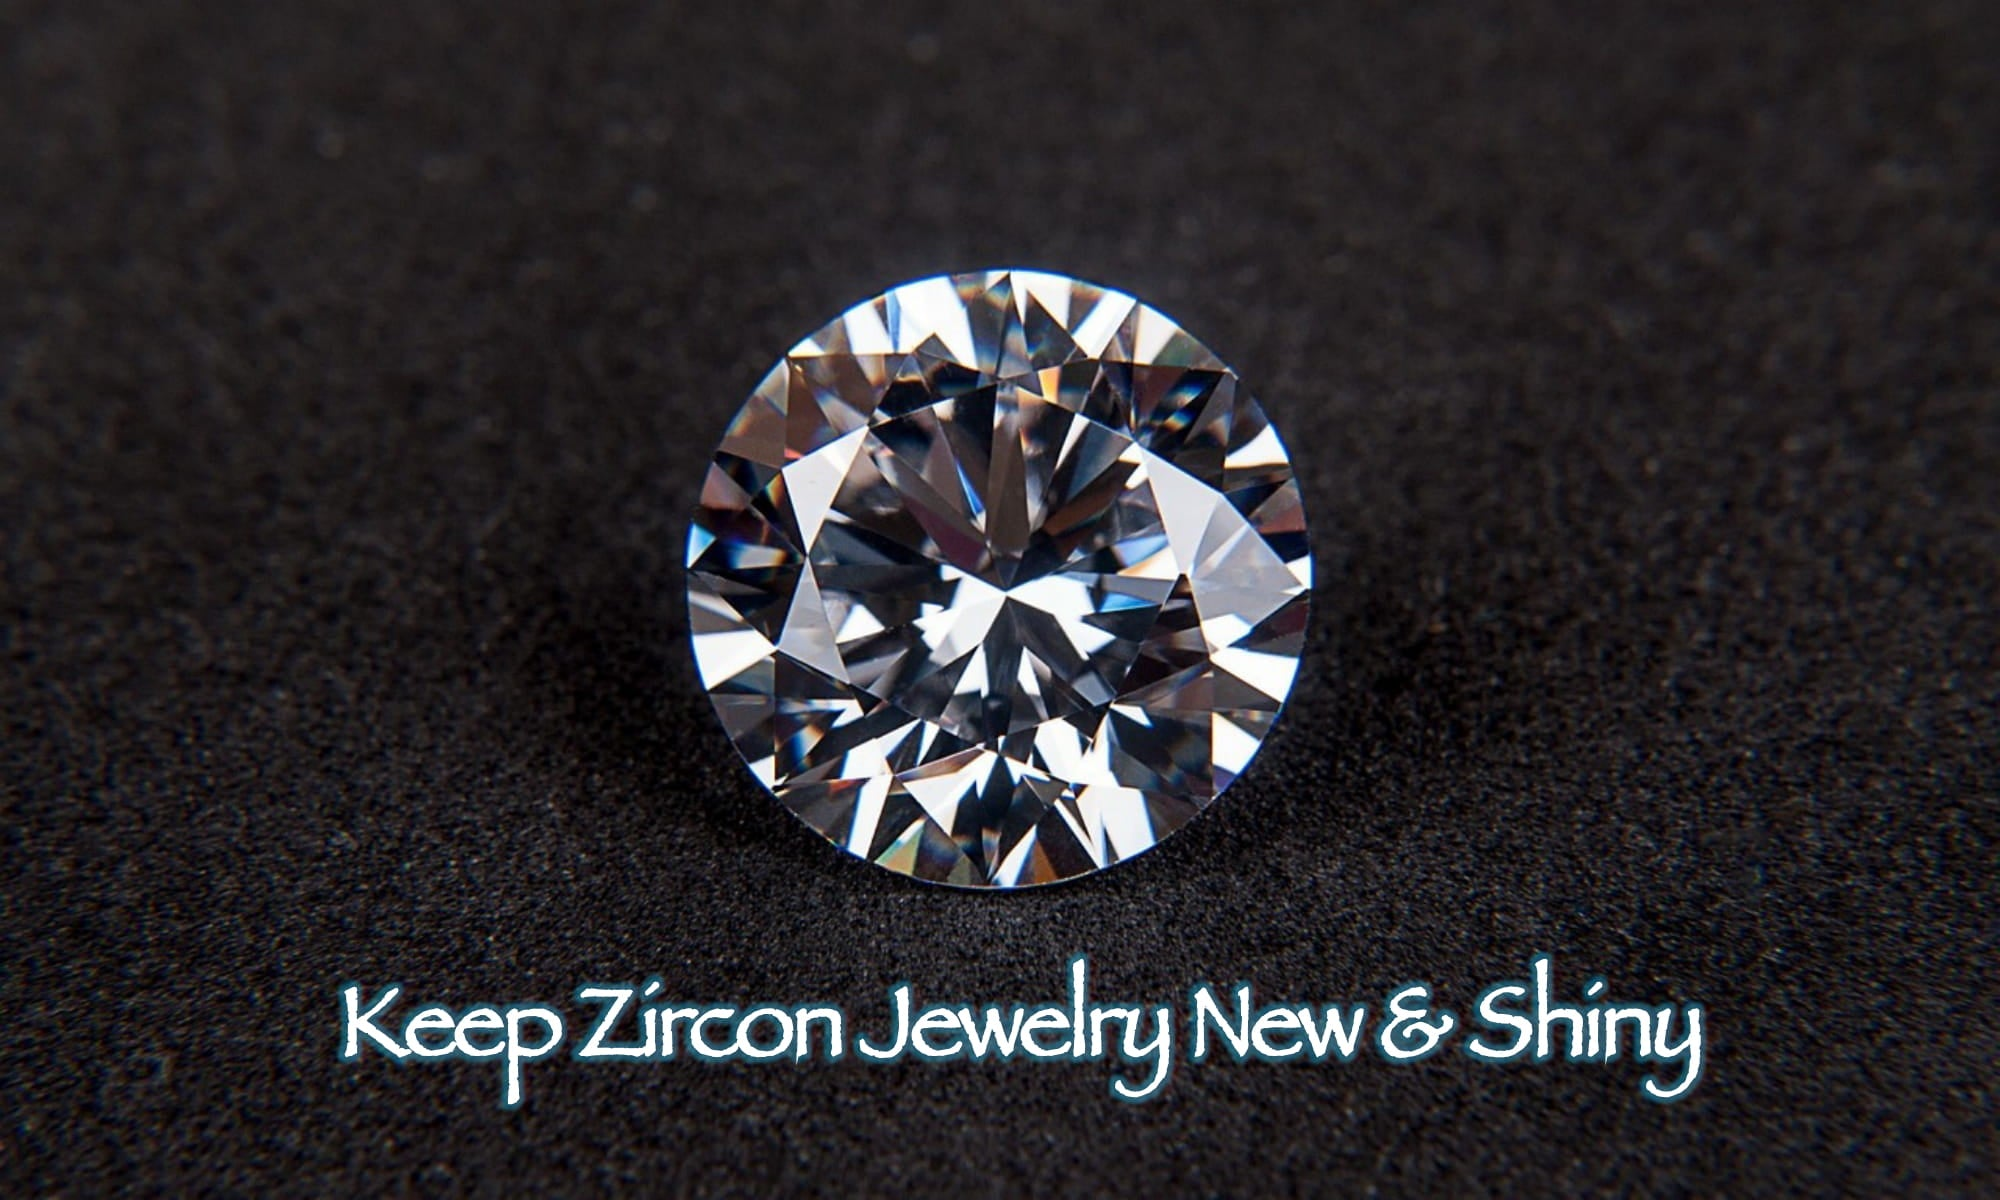 Keep Zircon Jewelry New & Shiny Blog